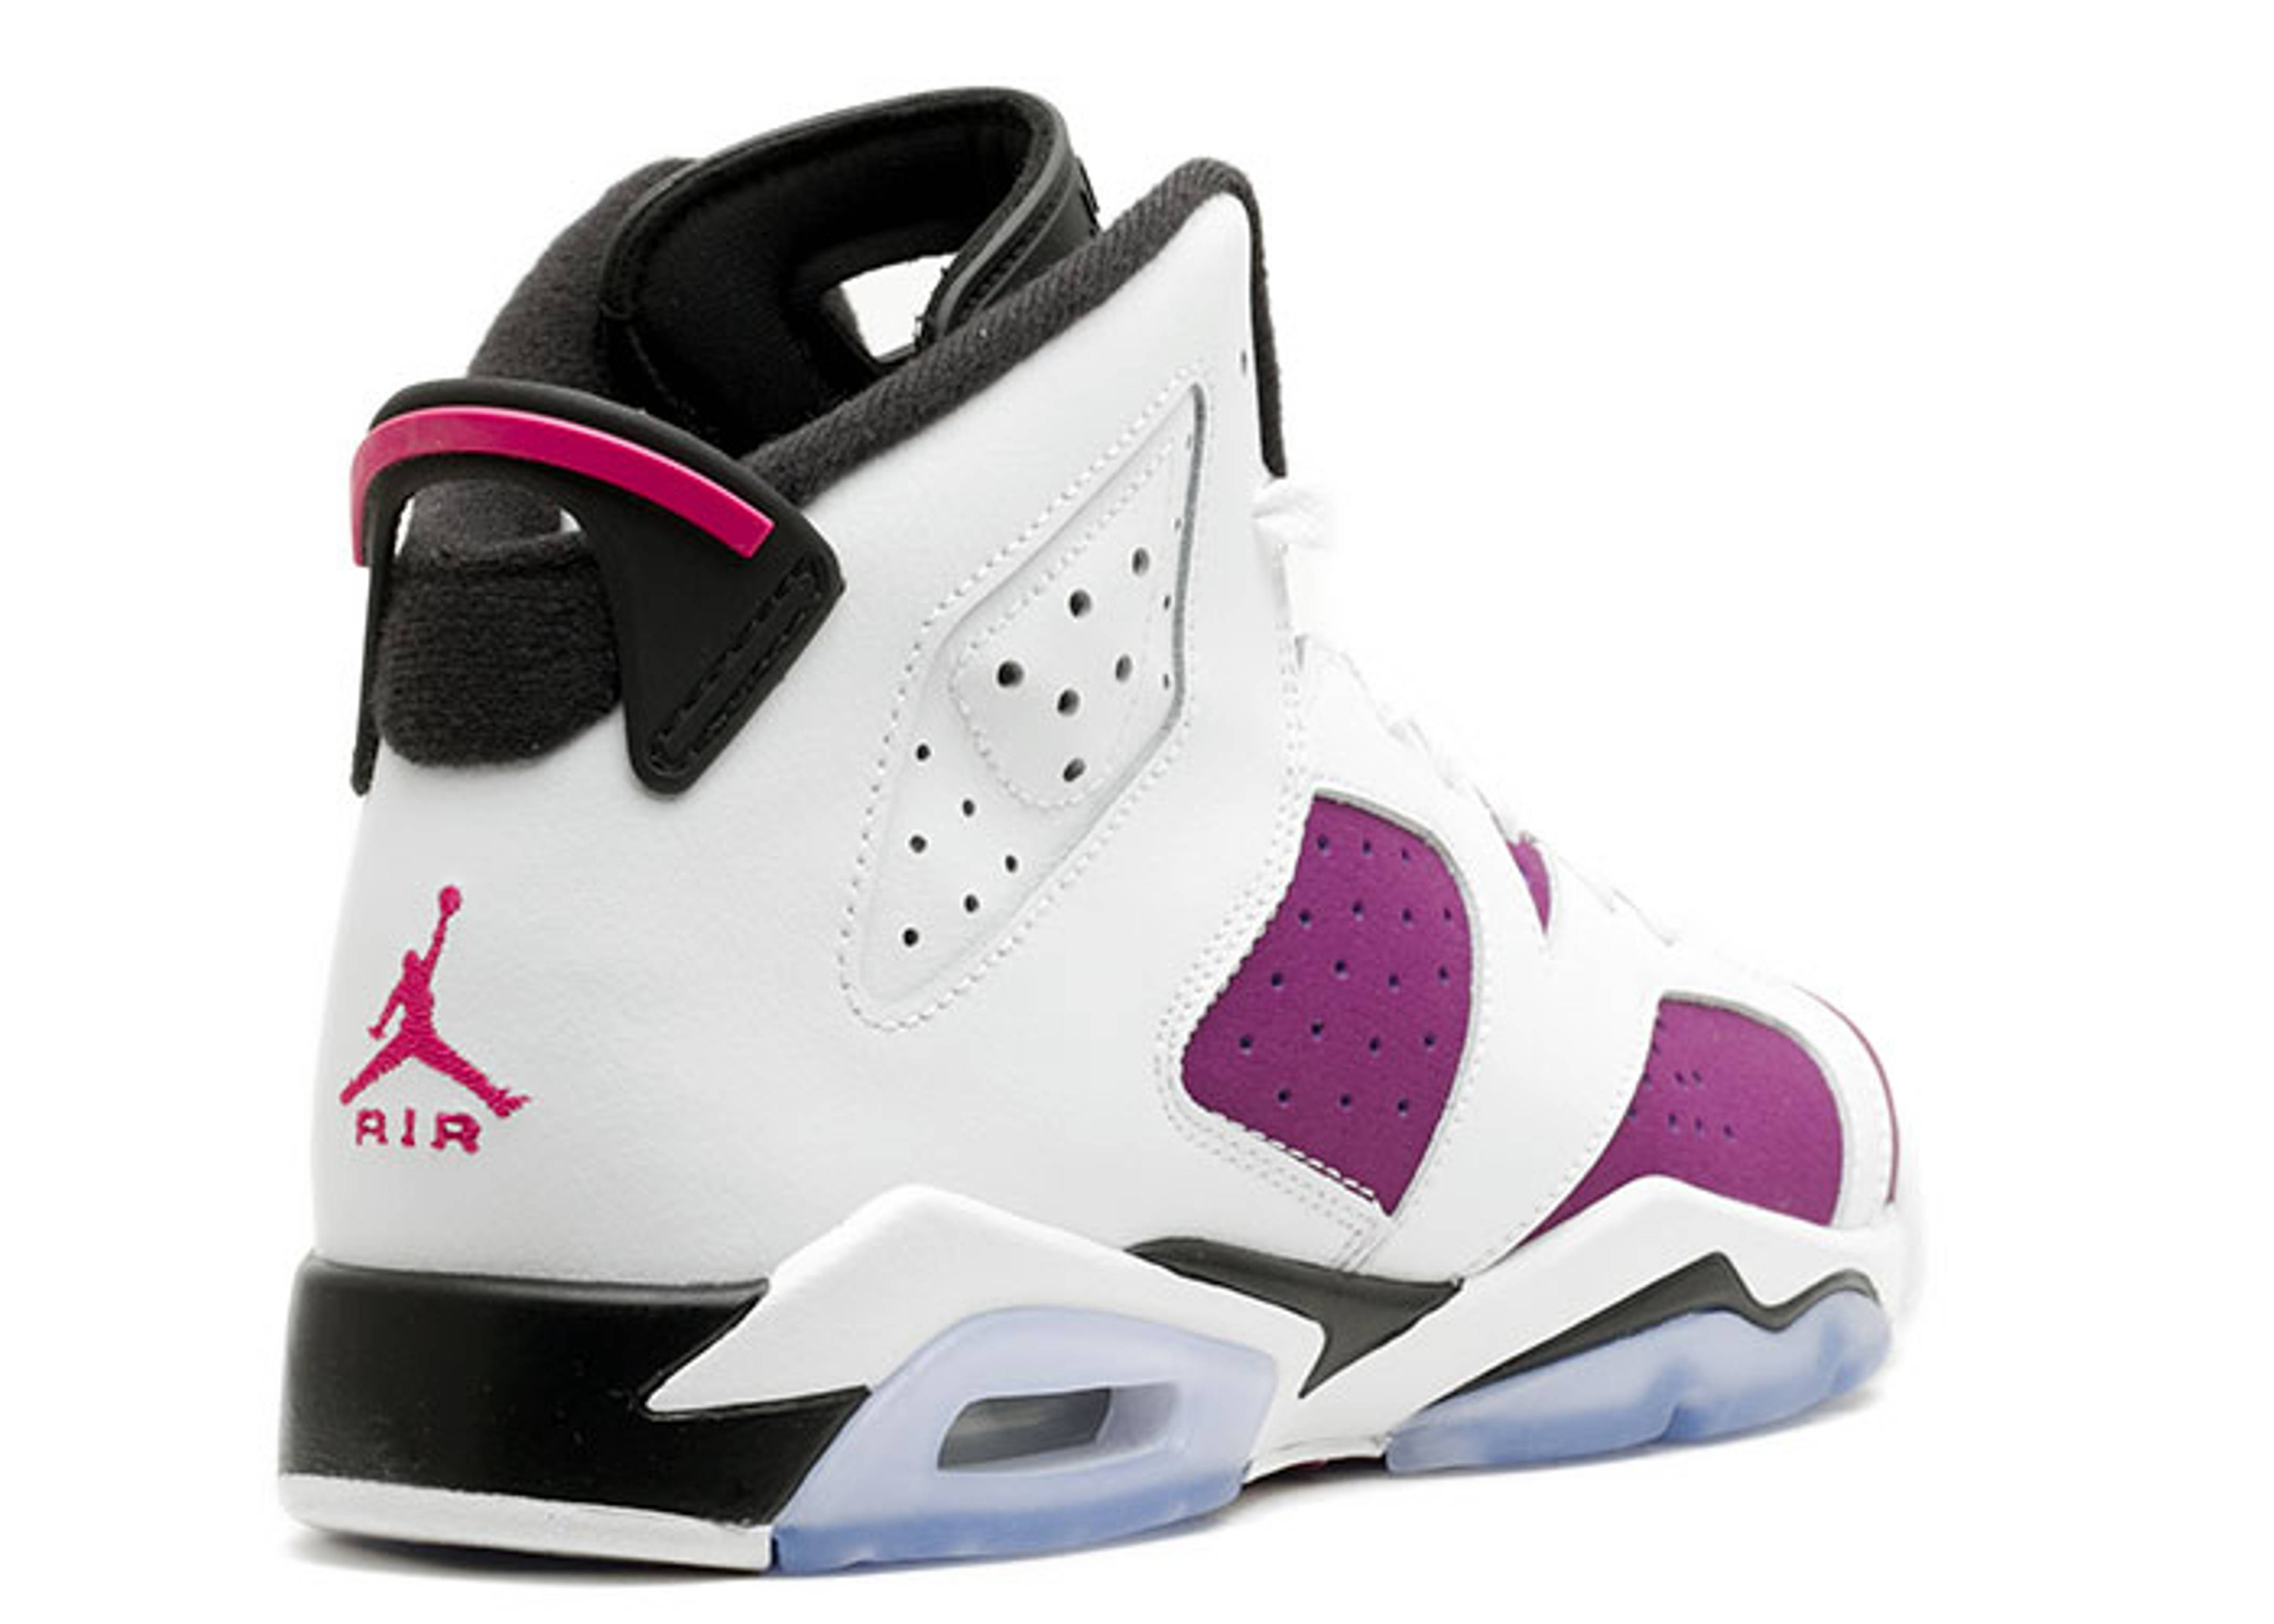 san francisco fd3a9 2577d Air Jordan 6 Retro Gg (gs) - Air Jordan - 543390 127 - white vivid  pink-brght grp-blk   Flight Club